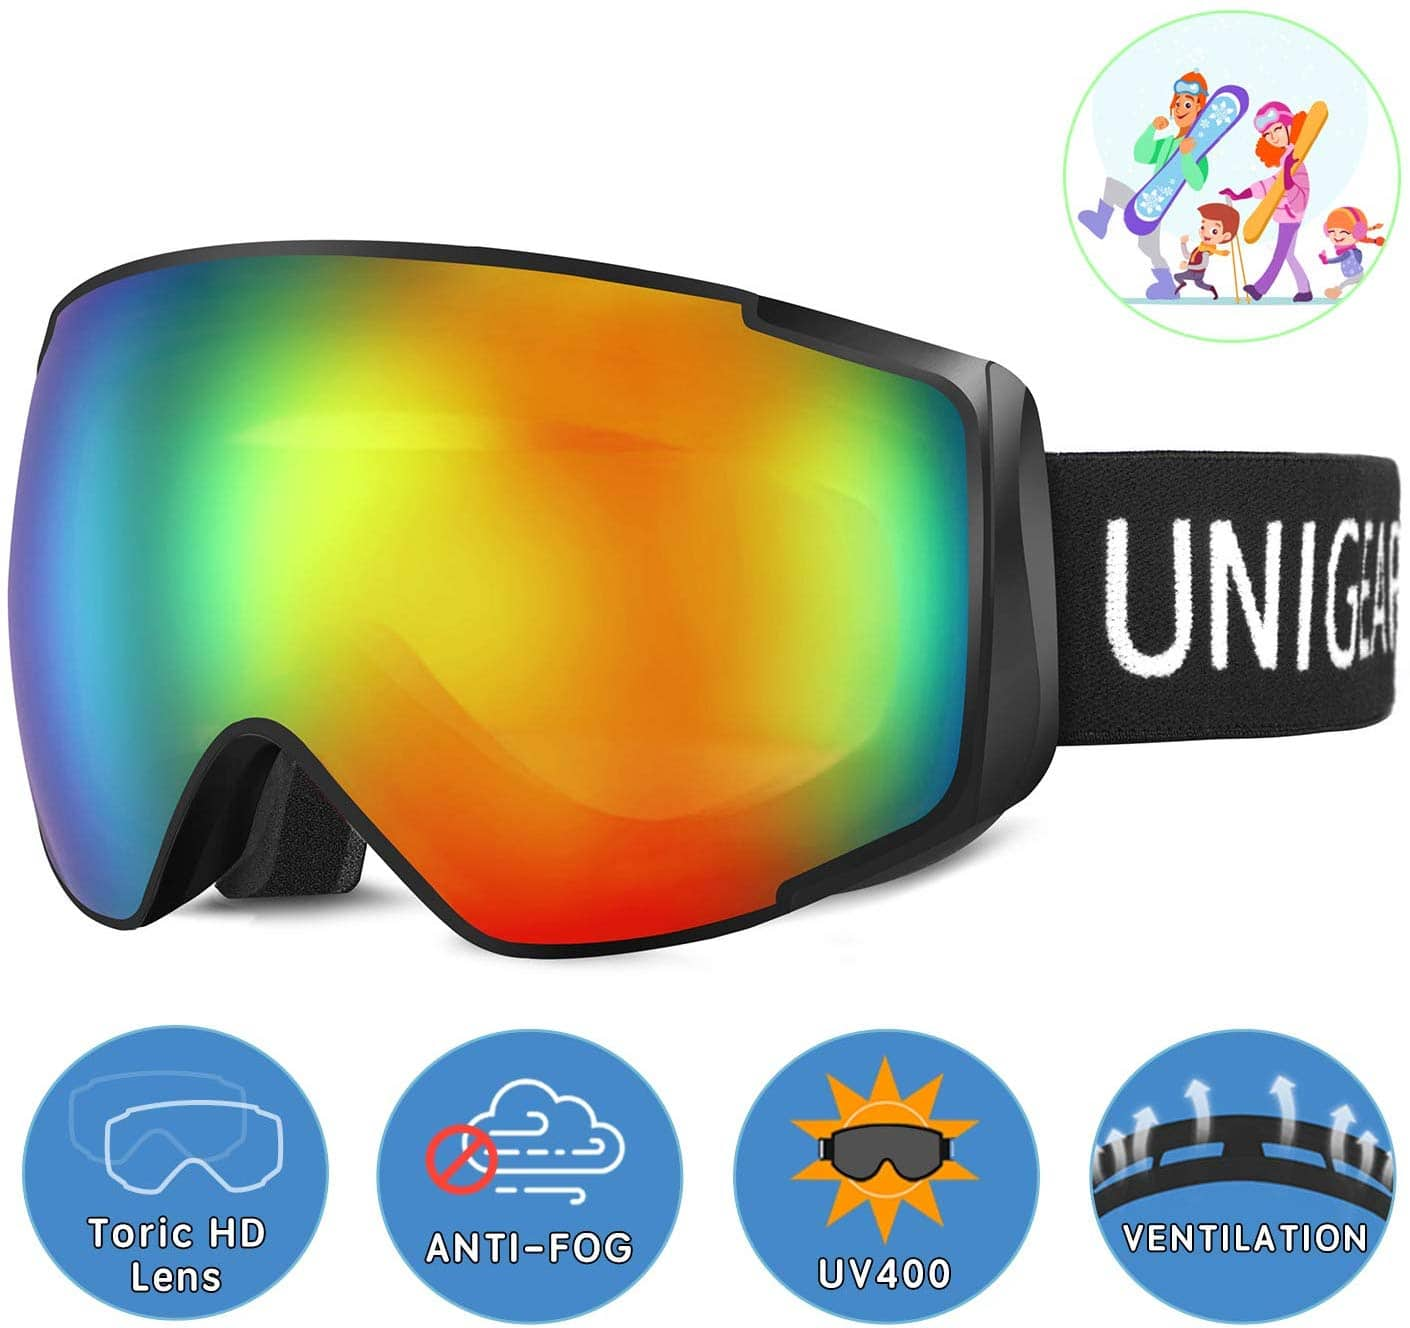 Unigear OTG Ski Snowboard Goggles (Various Colors) for Kids and Adult from $9.99